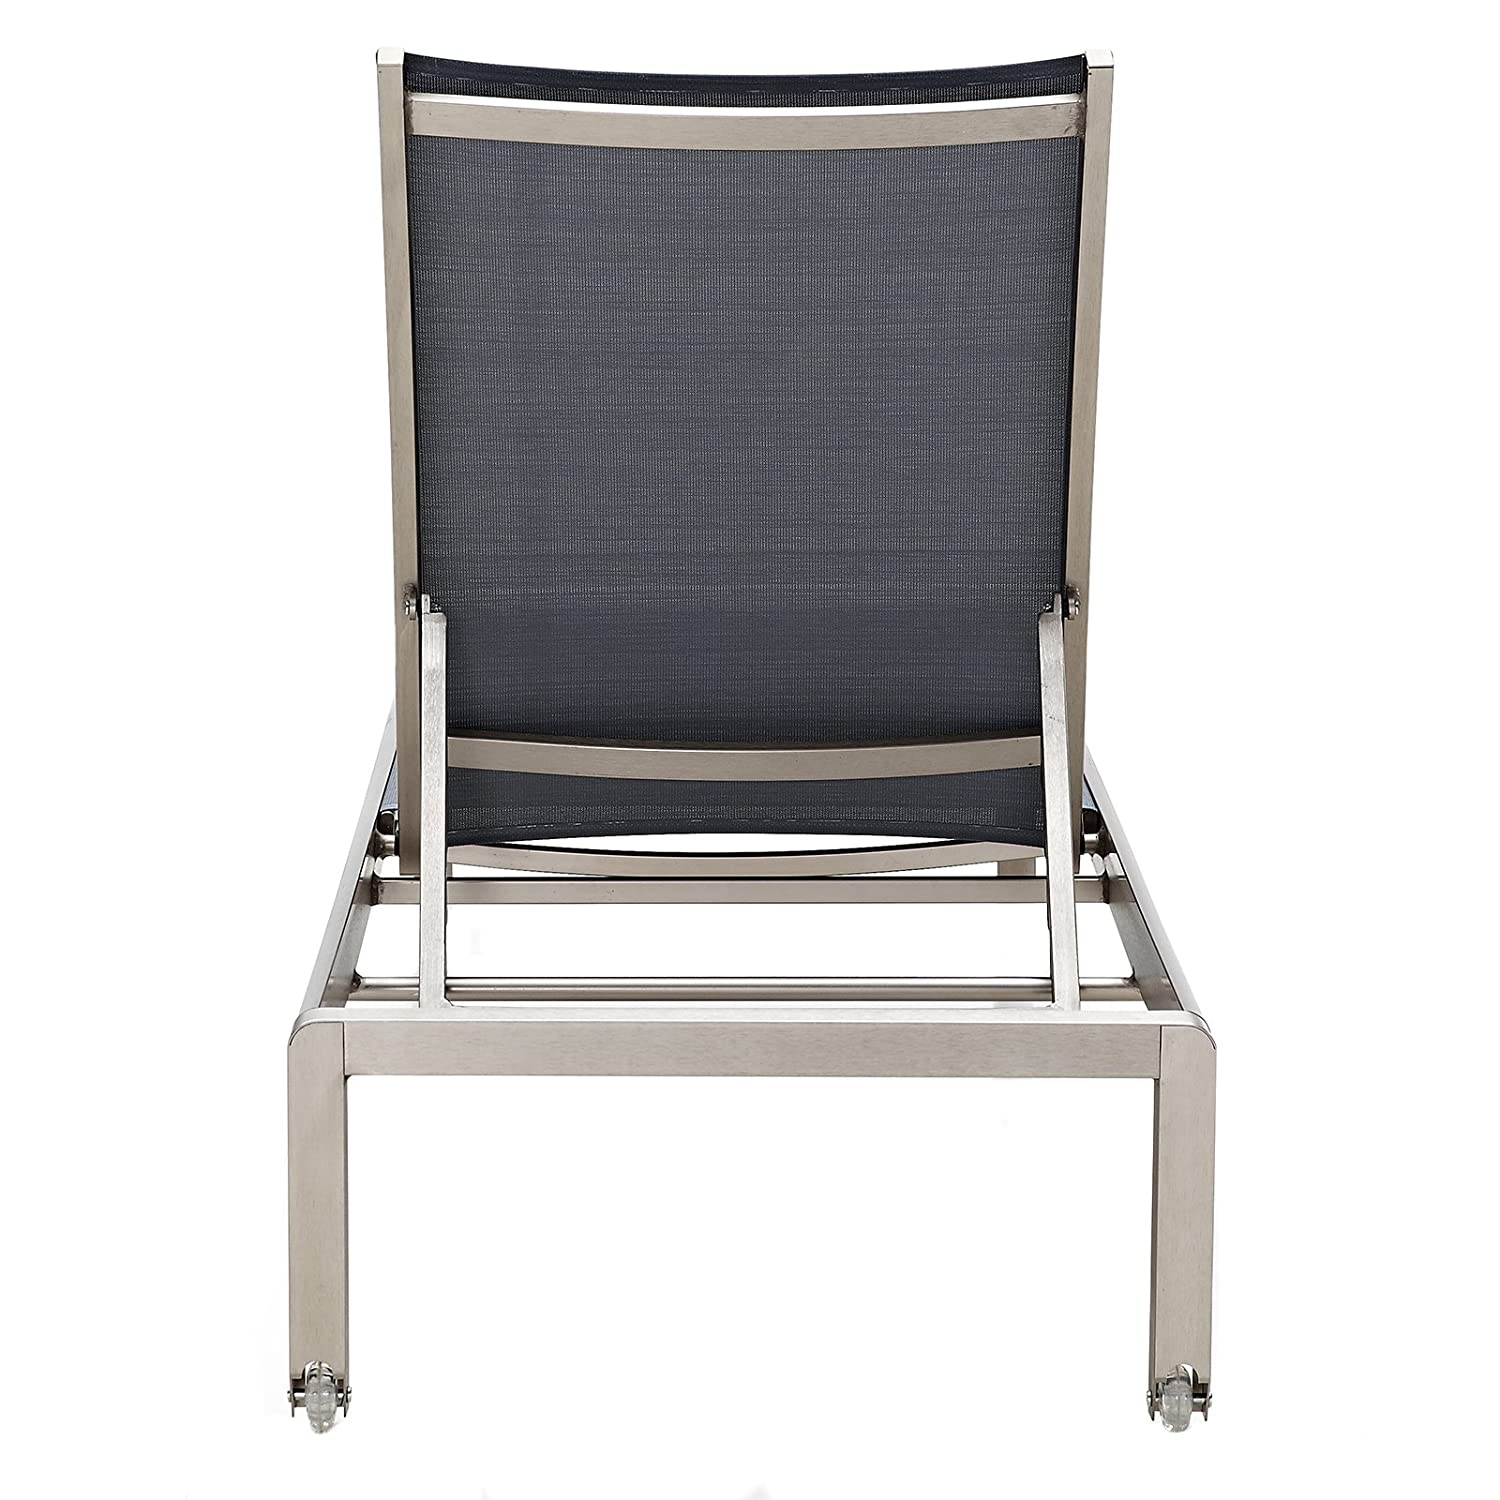 Anodized Aluminum//White Meelano 200-WHI M200 Outdoor Chaise Lounge